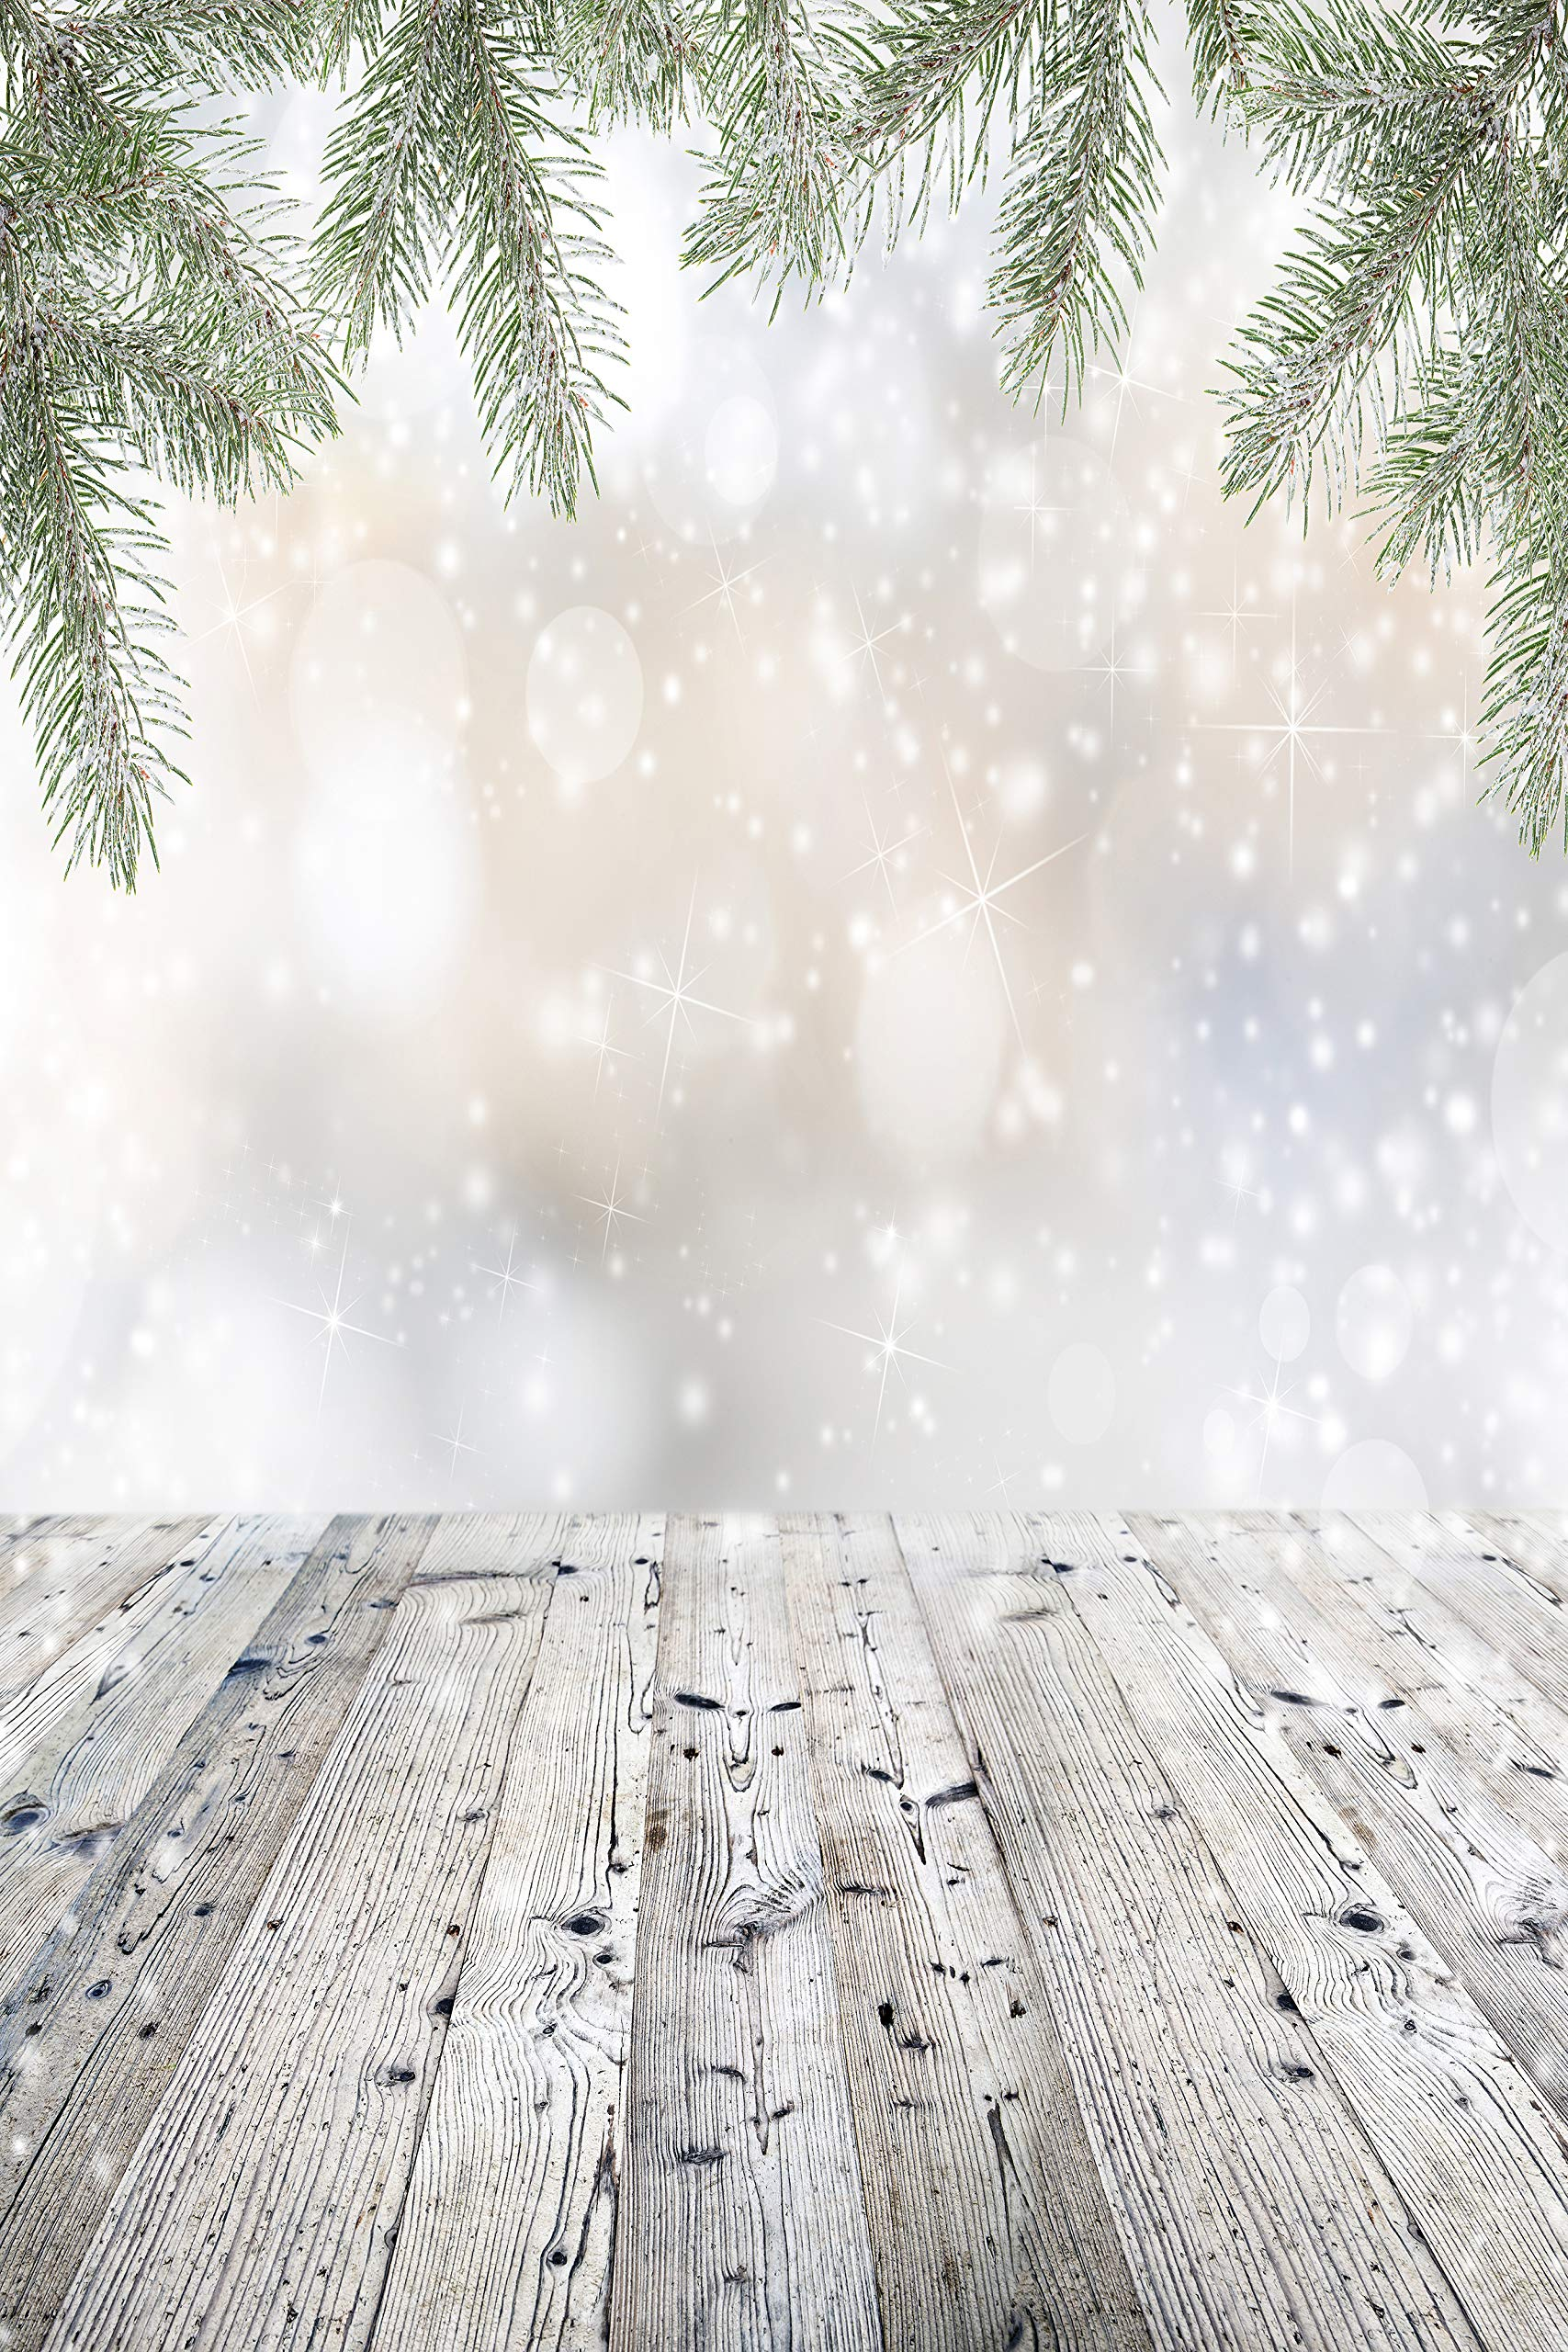 Christmas Frozen Branches Backdrop White Falling Snow Wooden Floor Pine Tree Sparkle Twinkle Winter Party Decoration Printed Fabric Photography Background (G1517, 8' Wide by 12' Tall)